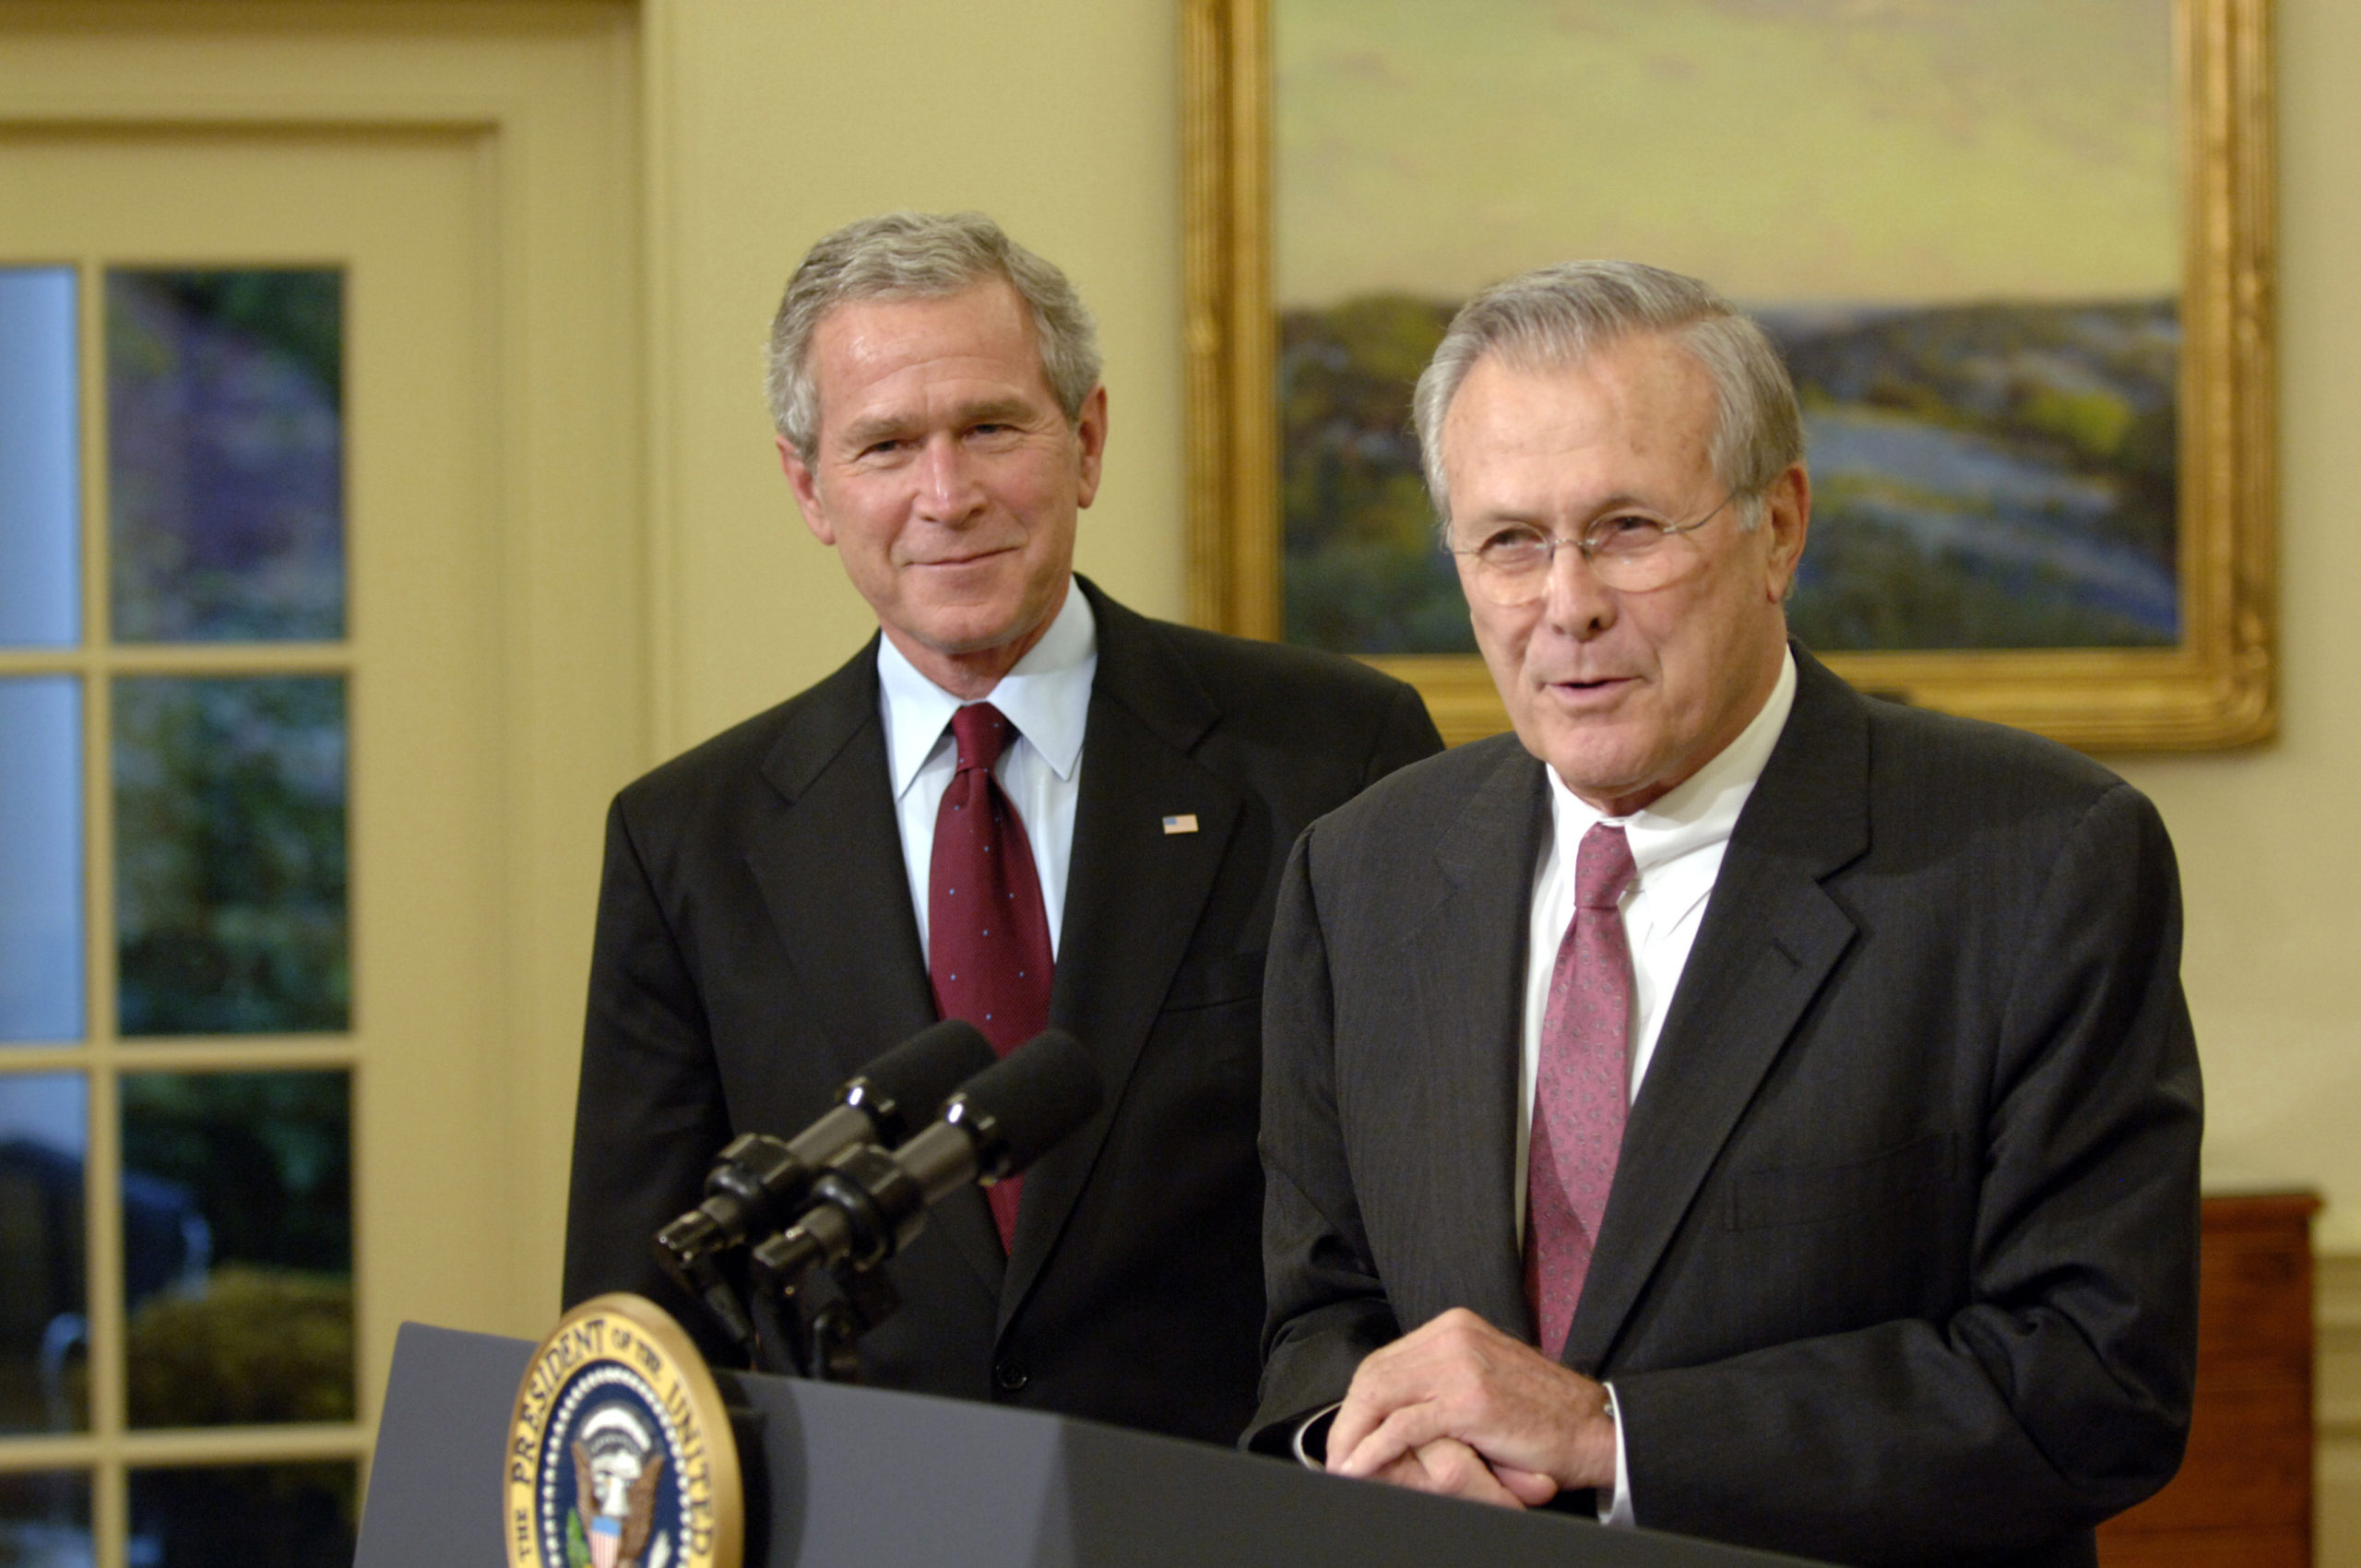 Bush and Rumsfeld